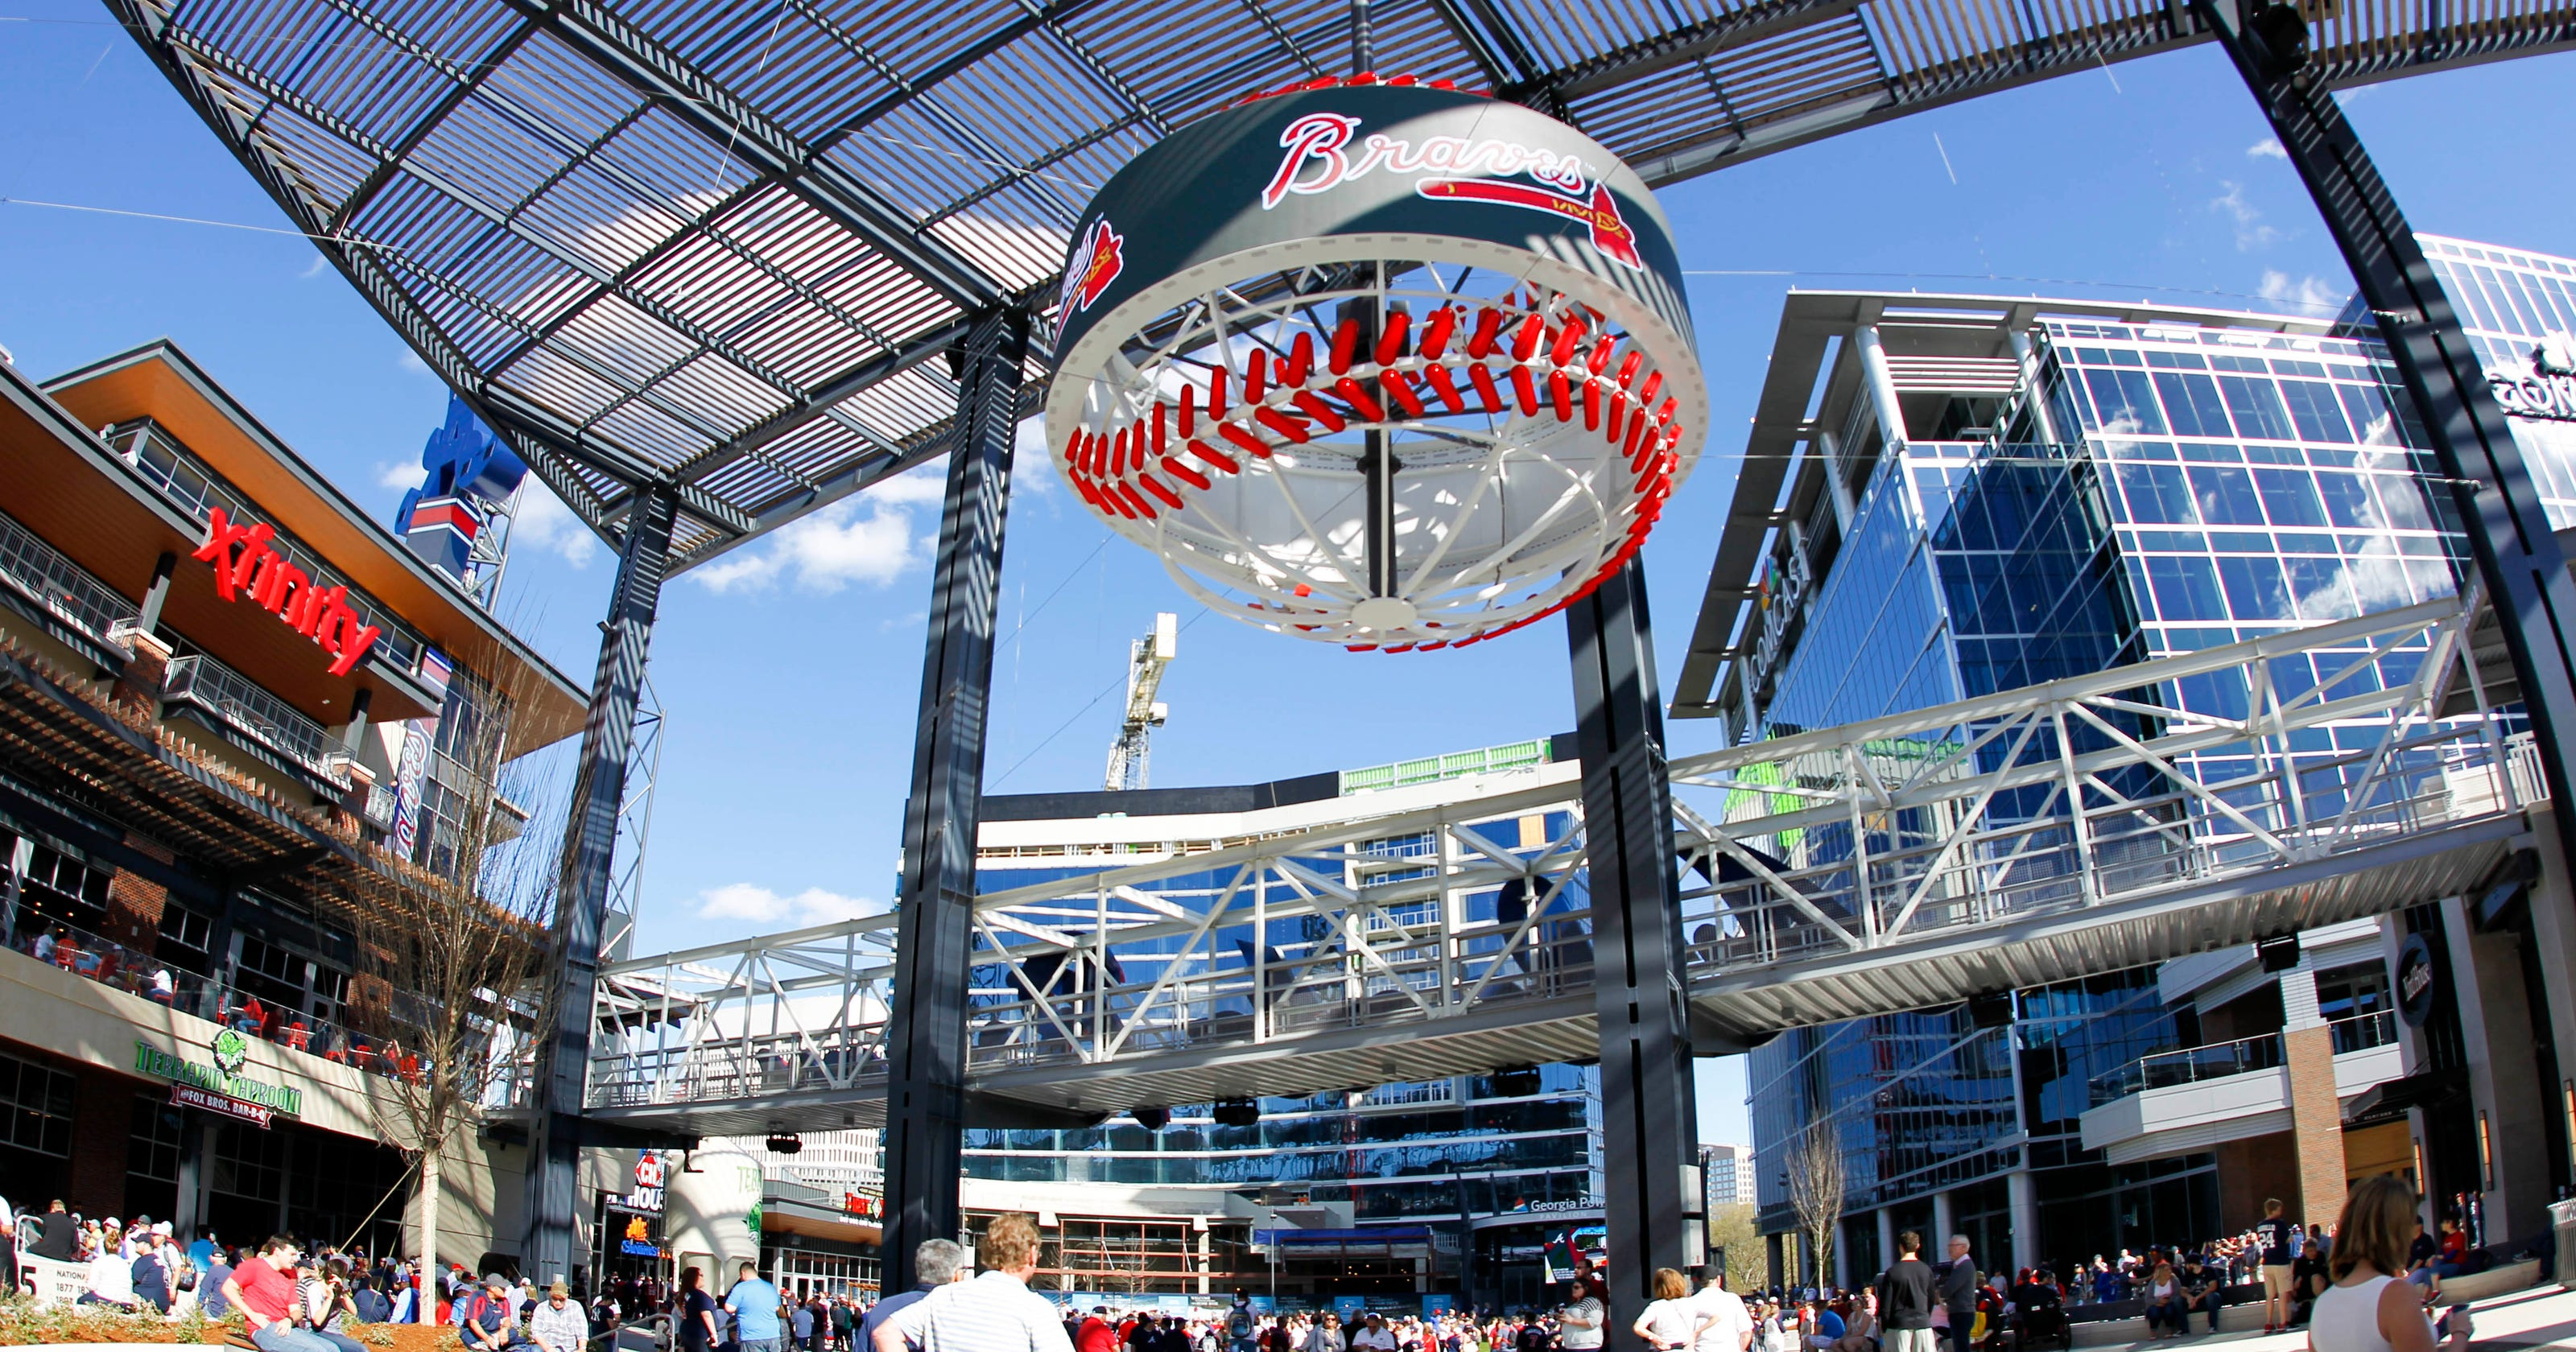 As Braves open SunTrust Park, here are seven numbers to know